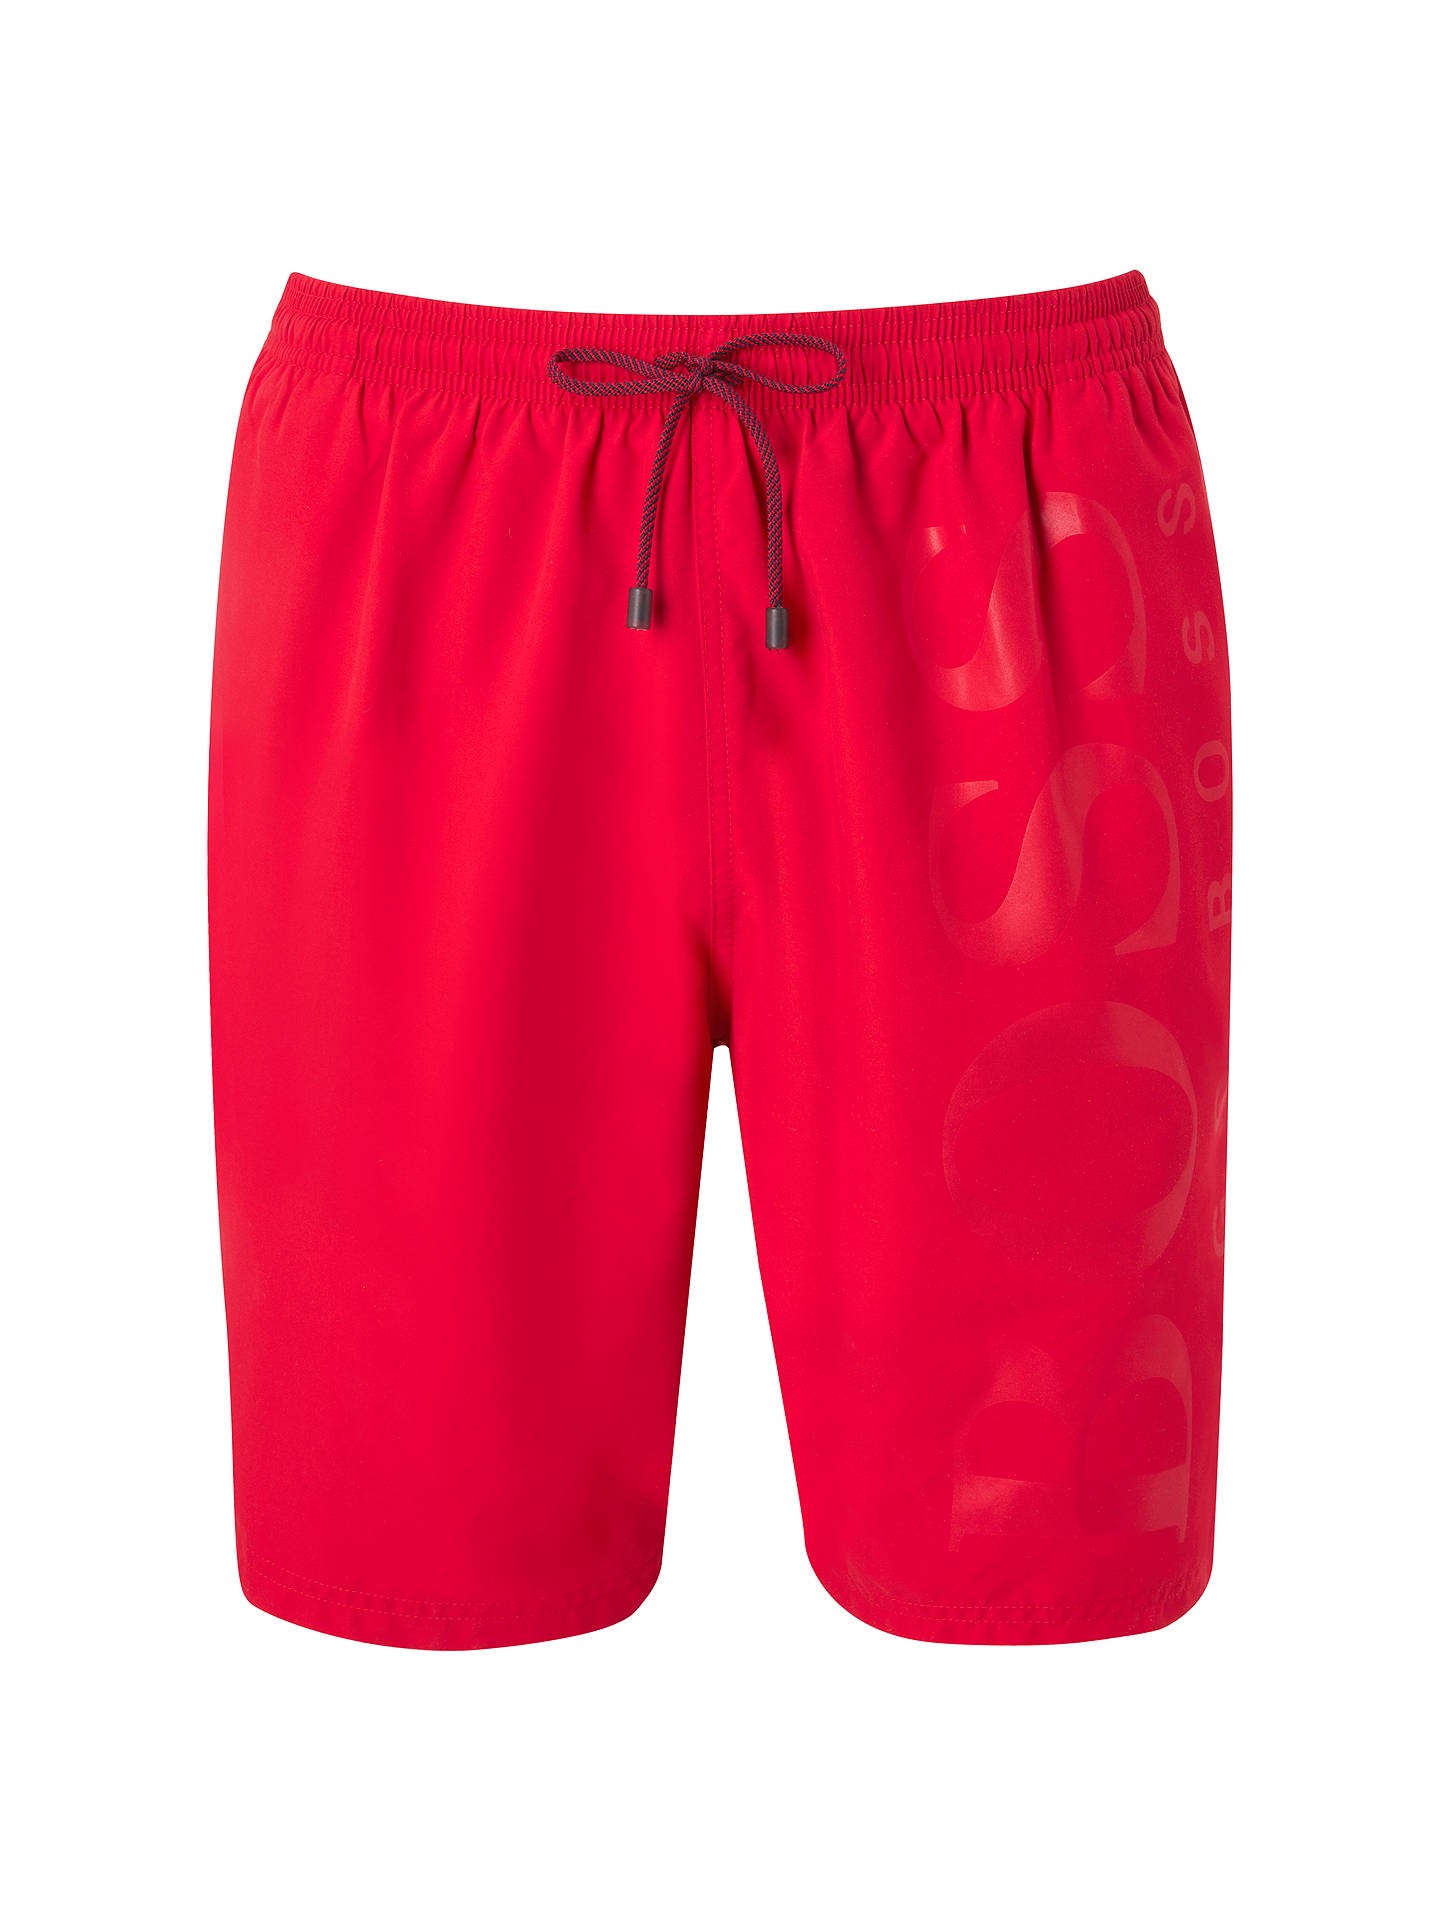 BuyBOSS Logo Swim Shorts, Red, S Online at johnlewis.com